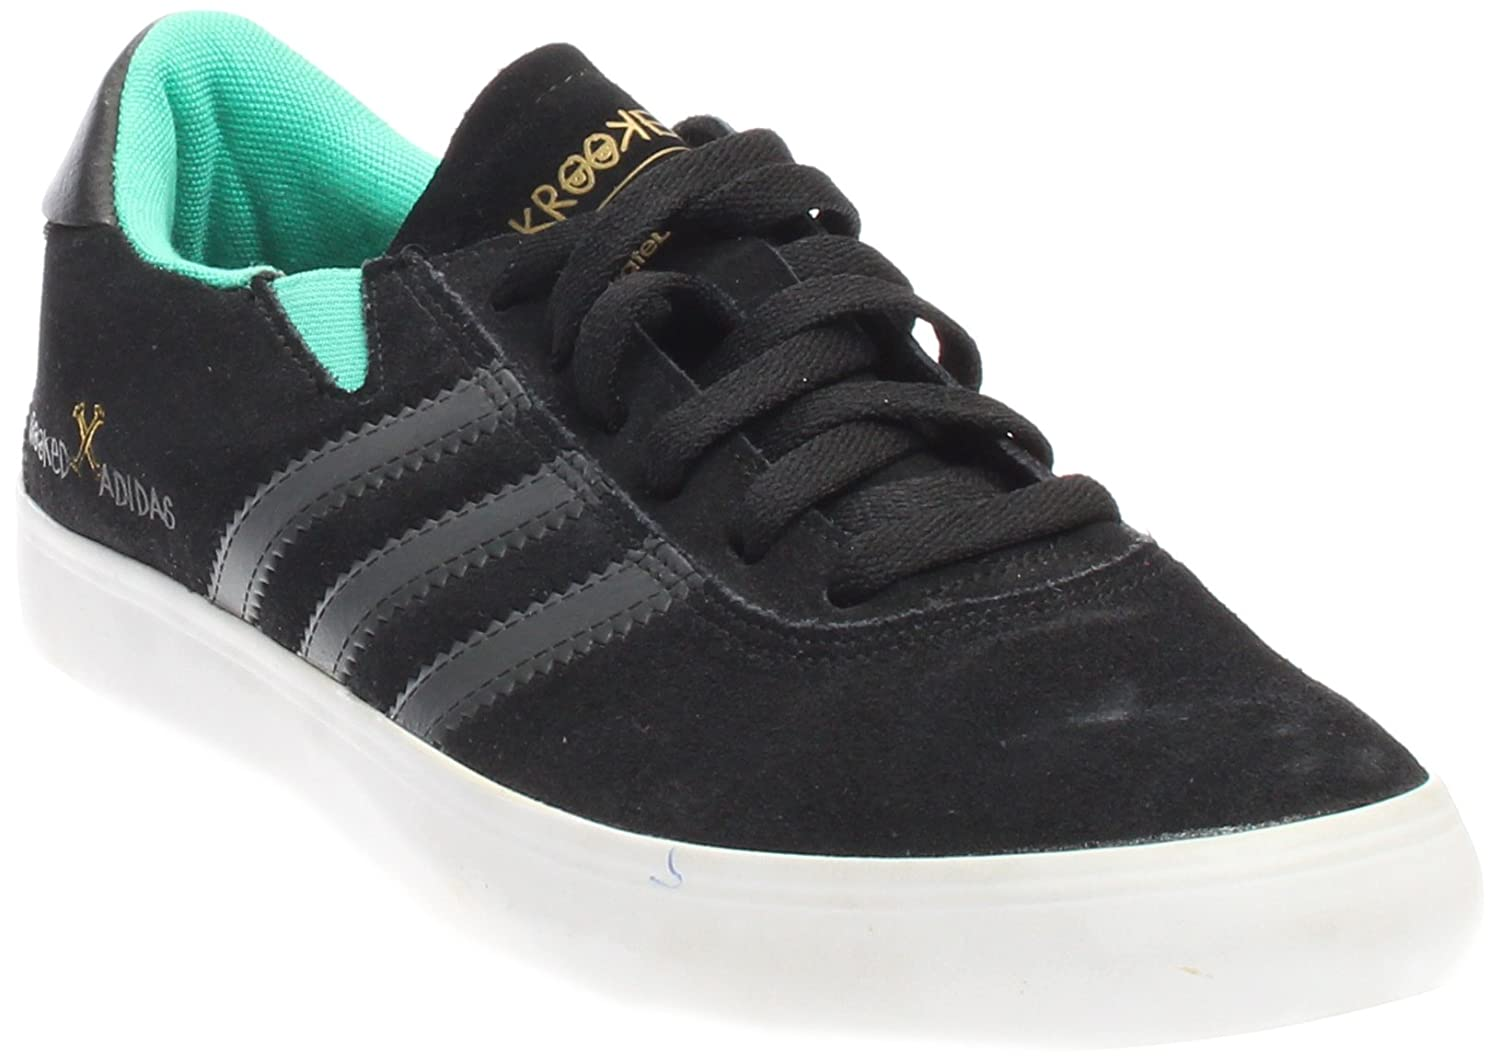 reputable site 3caaf 20d6d Amazon.com  adidas Mens Gonz Pro BlackDGSO Green Suede Size 11.5  Skateboarding  Fashion Sneakers